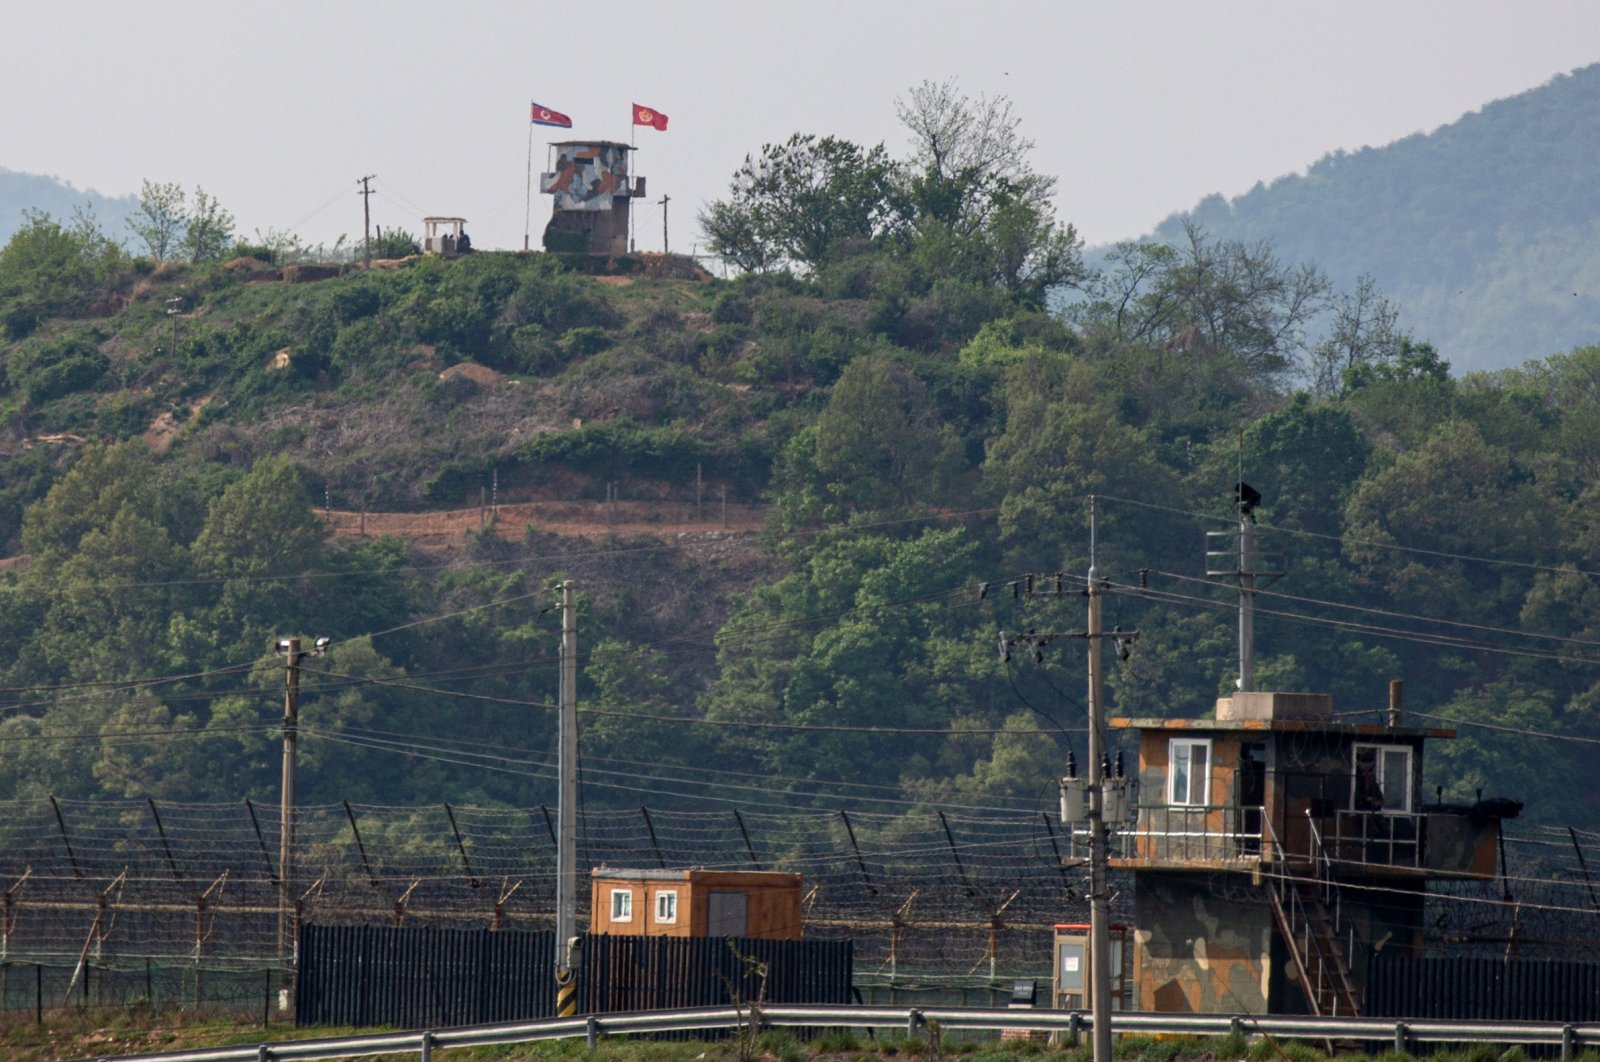 A North Koren frontier post (top) and a South Korean frontier post (front) face each other across the inter-Korean border near the city of Paju, Gyeonggi-do, South Korea, May 3 2020. (EPA Photo)